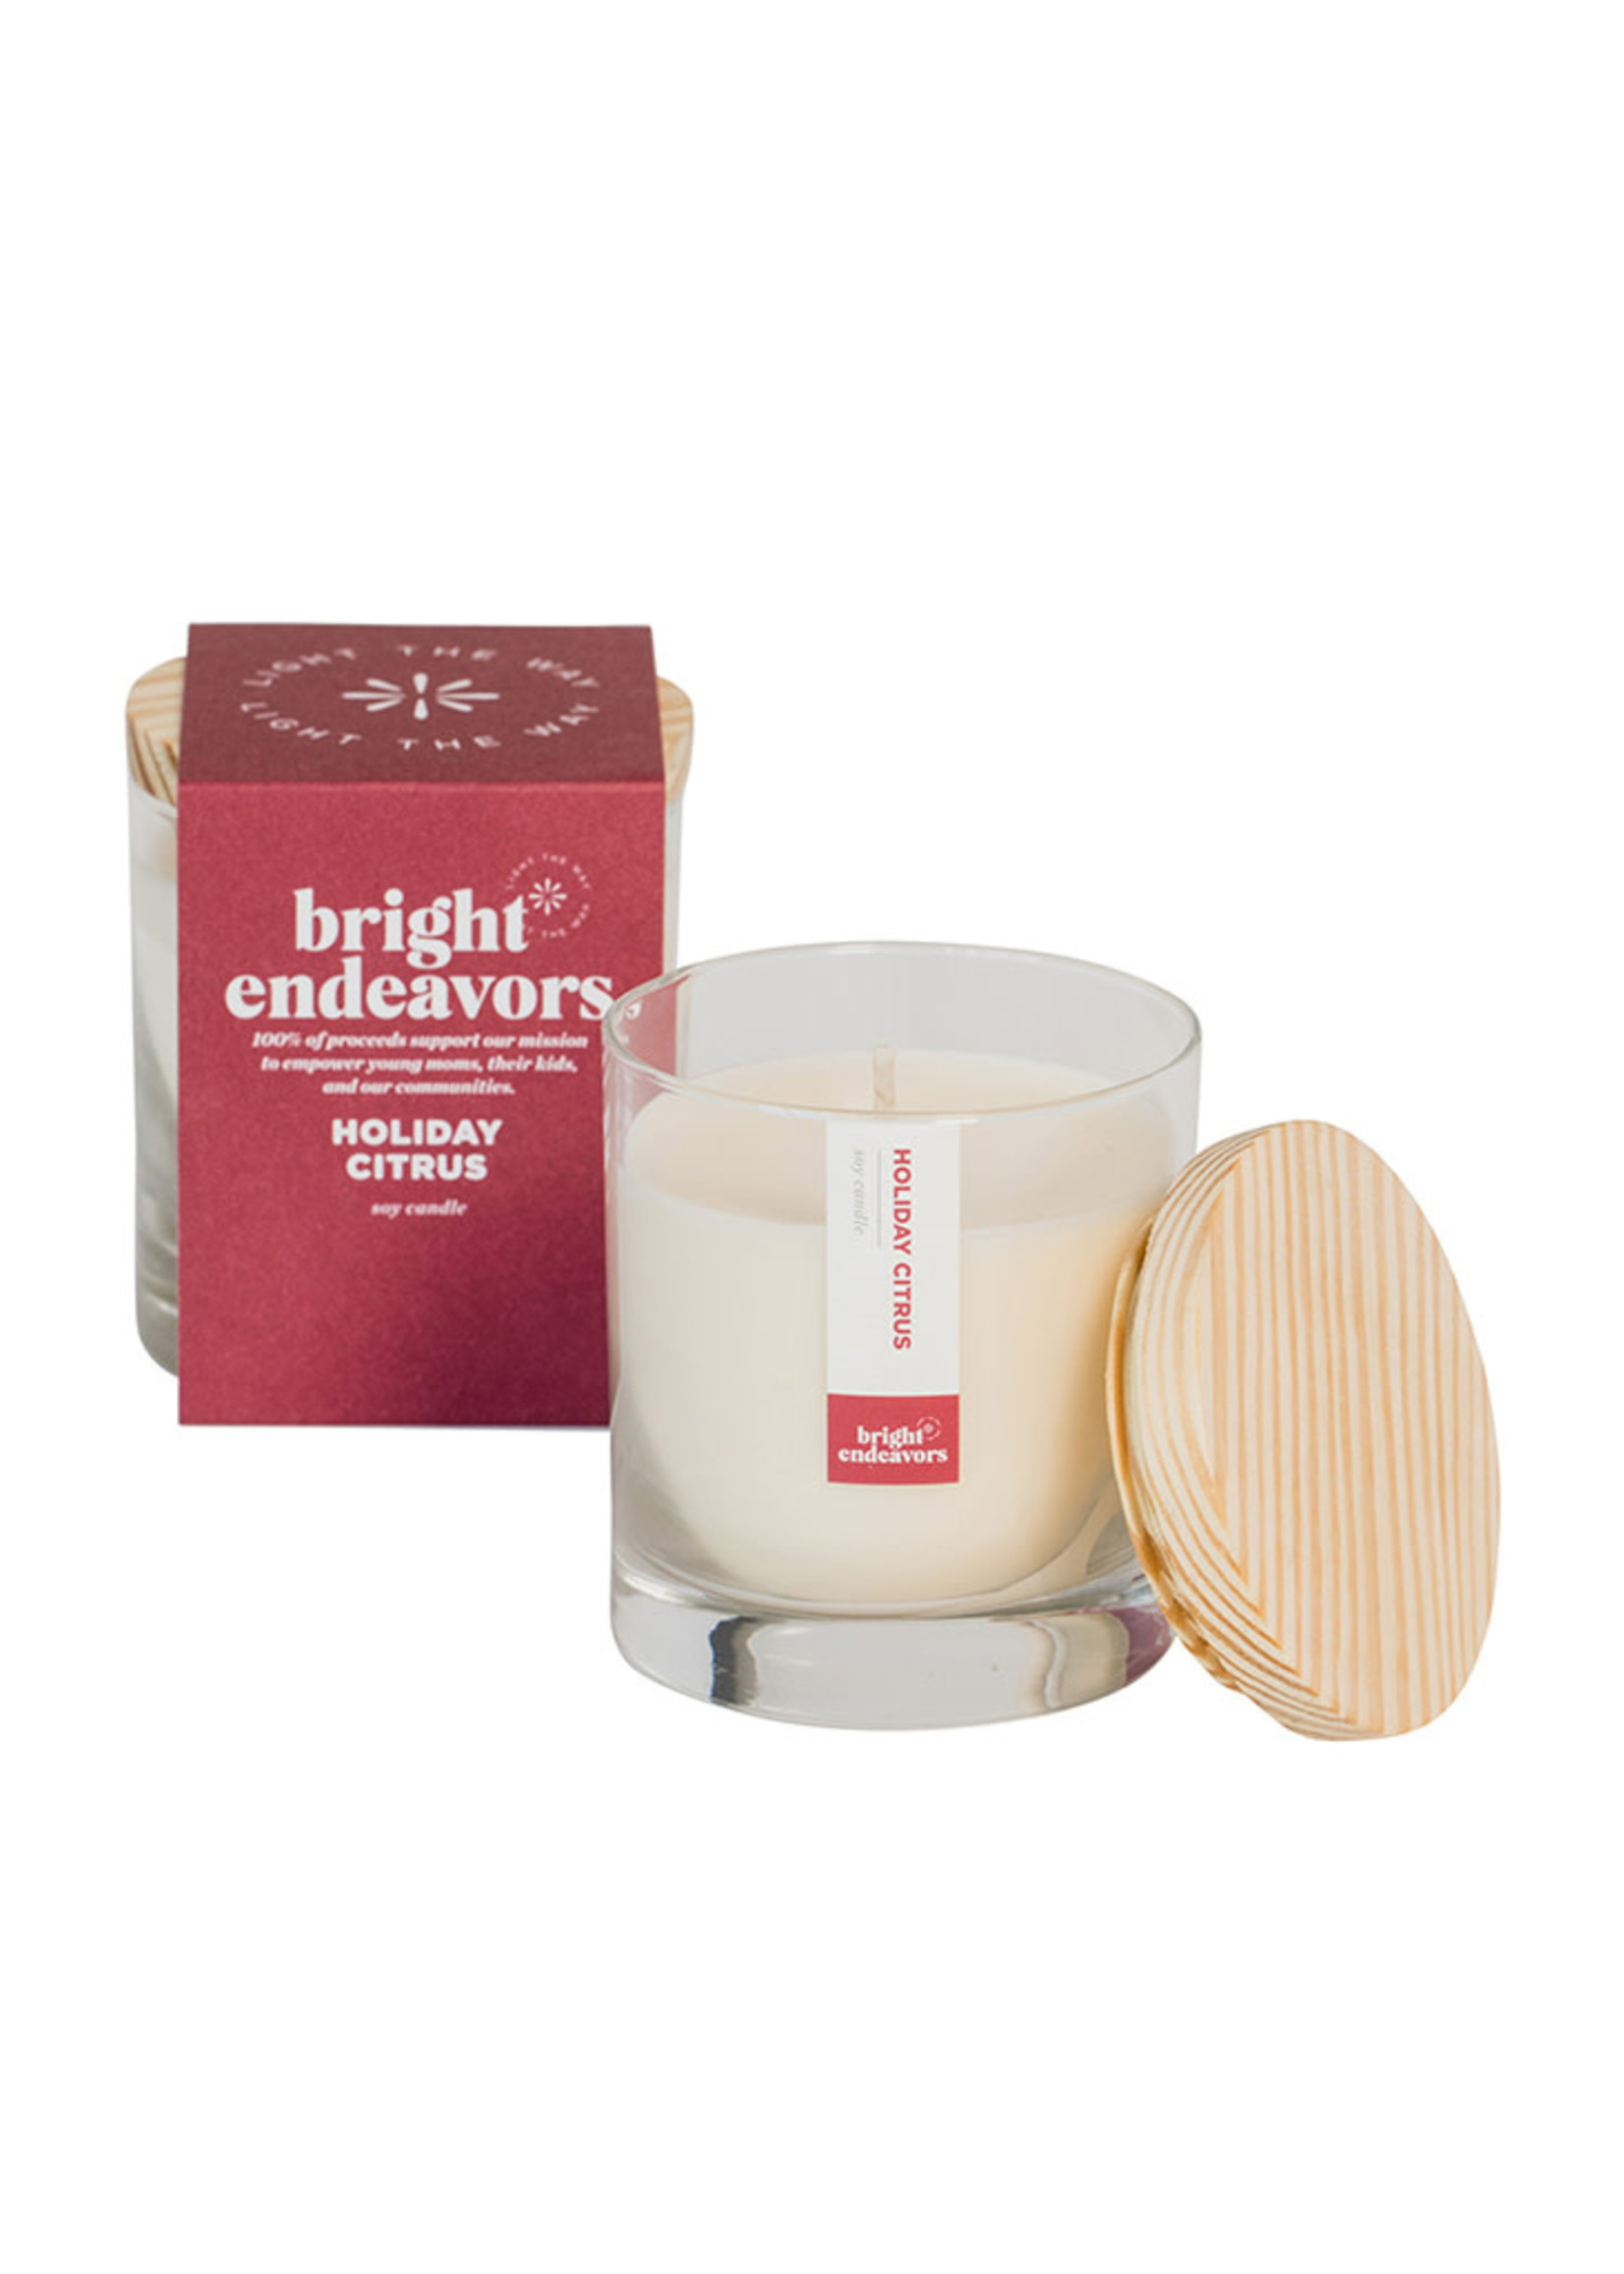 Bright Endeavors Holiday Citrus Soy Candle